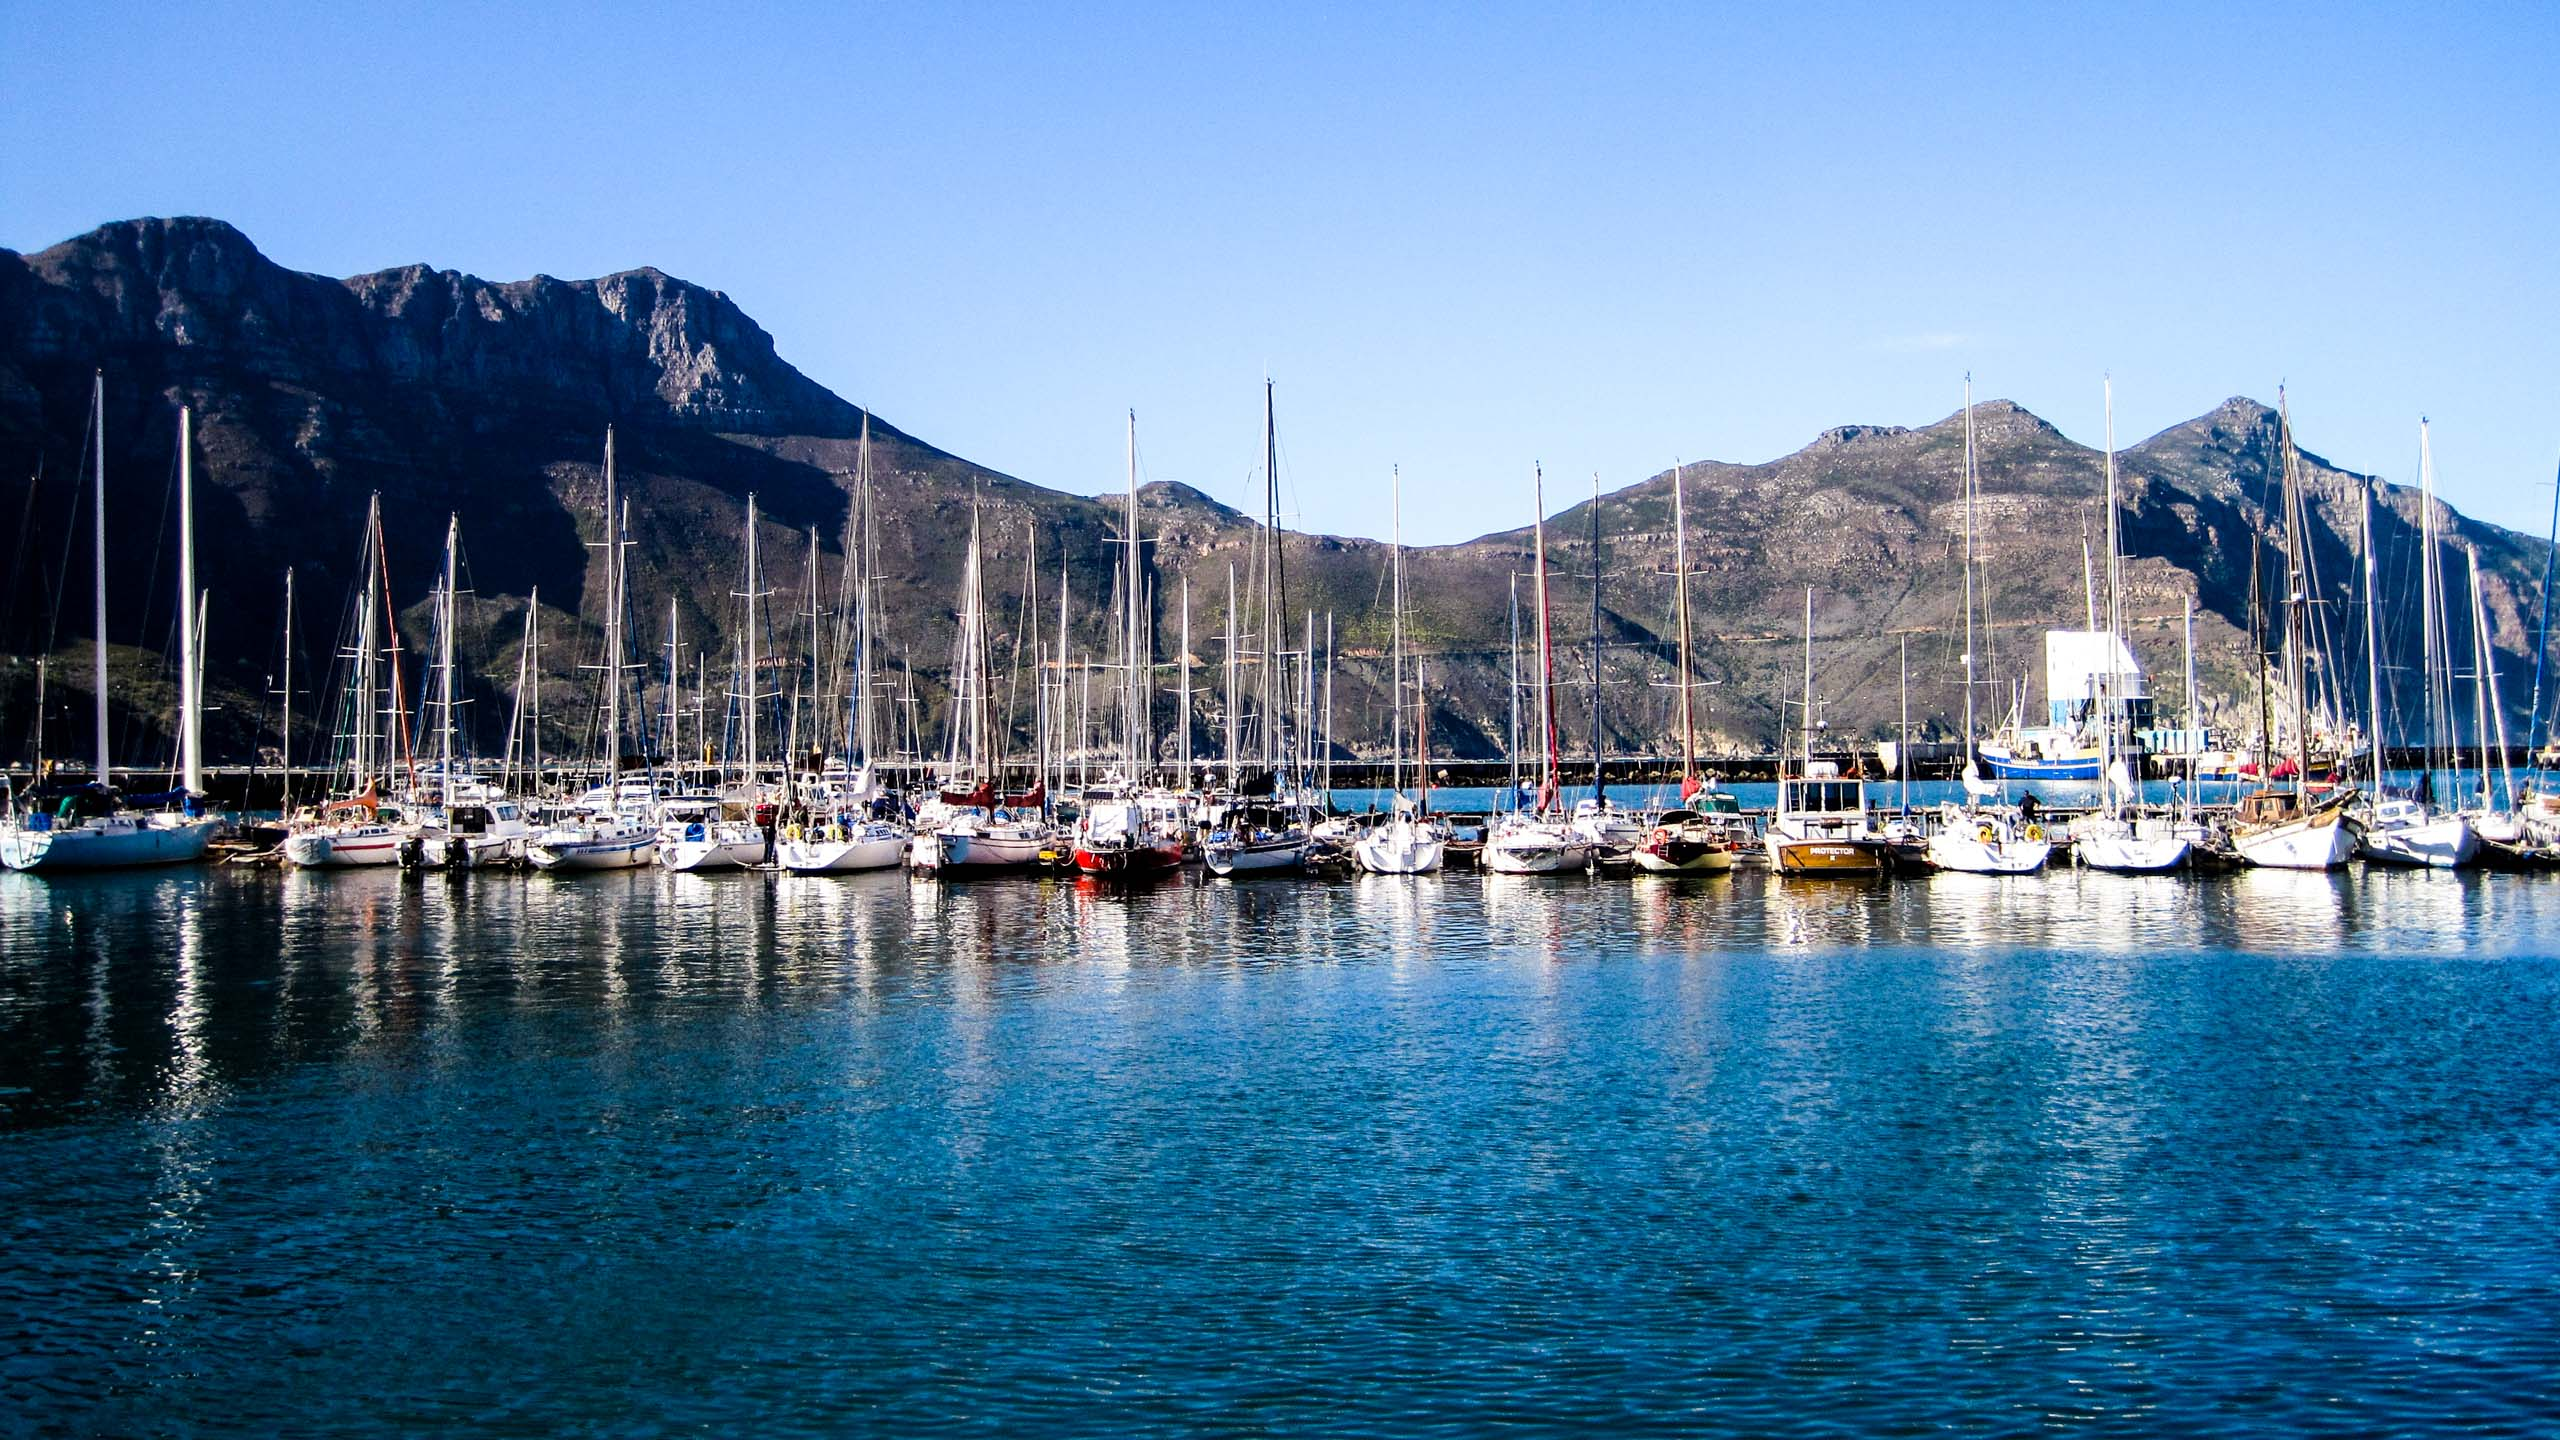 Boats in South Africa harbor